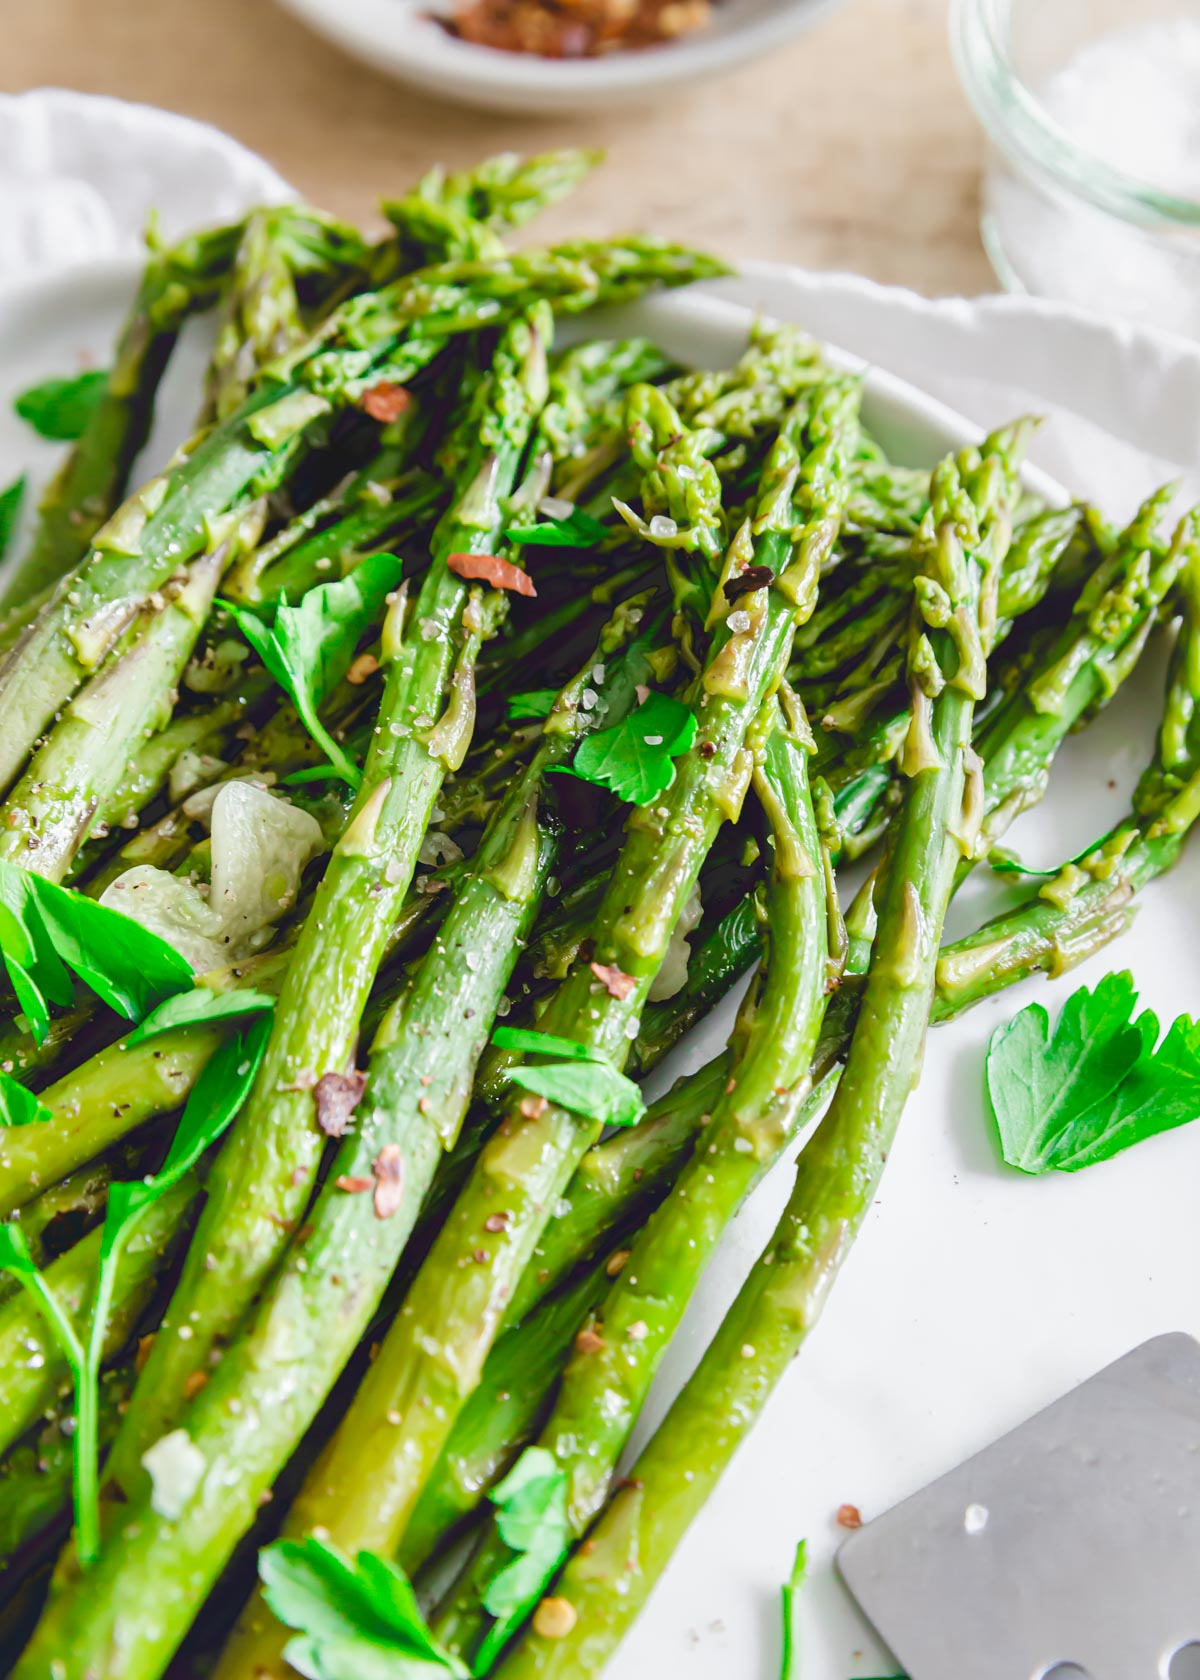 Tender cooked spring asparagus made in the Instant Pot on a plate with sea salt, parsley, garlic and chili flakes.